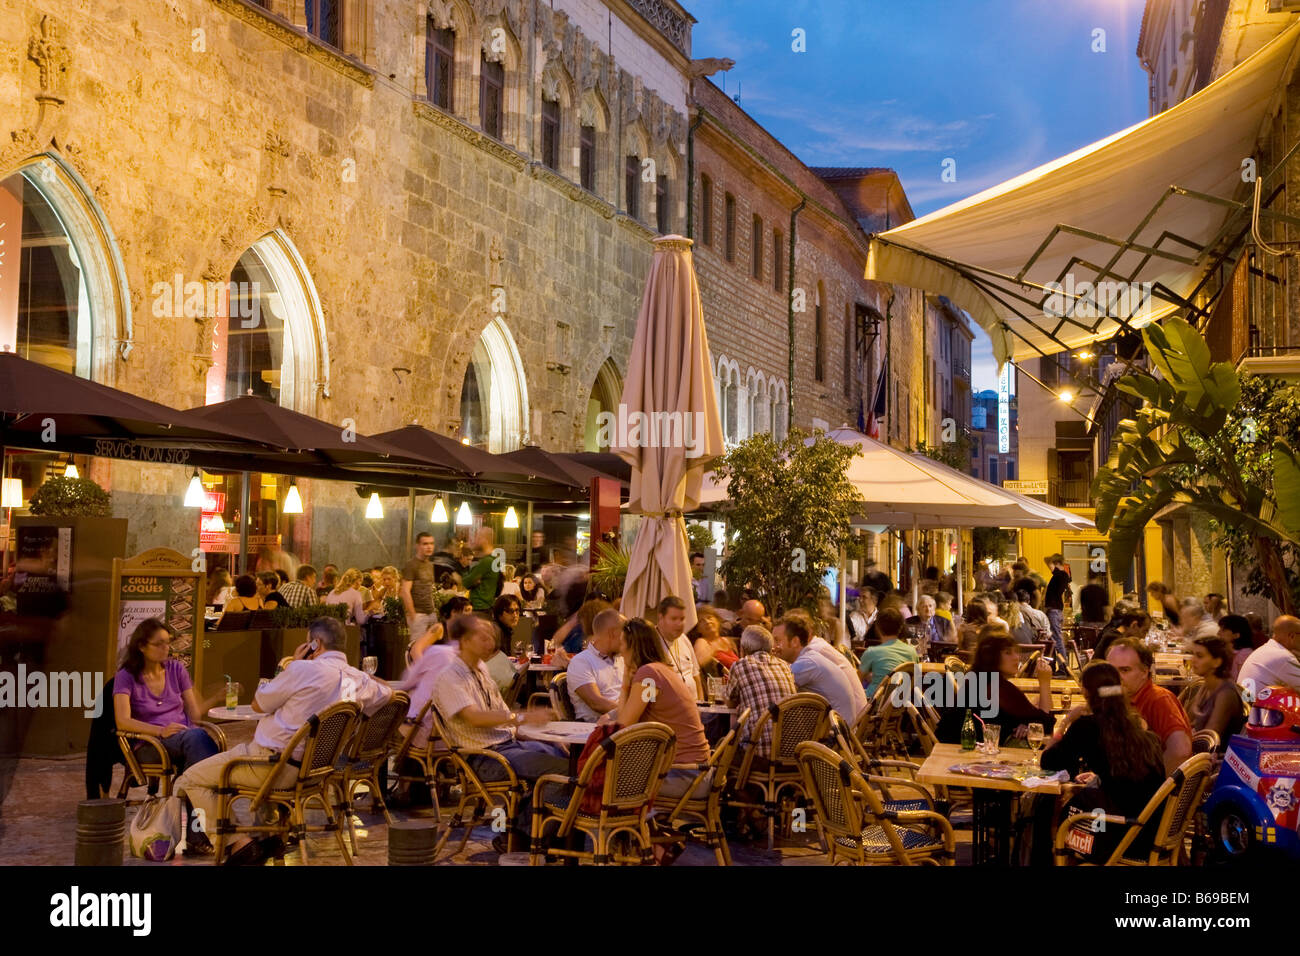 street cafes in the south of france city center perpignan europe stock photo 21104908 alamy. Black Bedroom Furniture Sets. Home Design Ideas